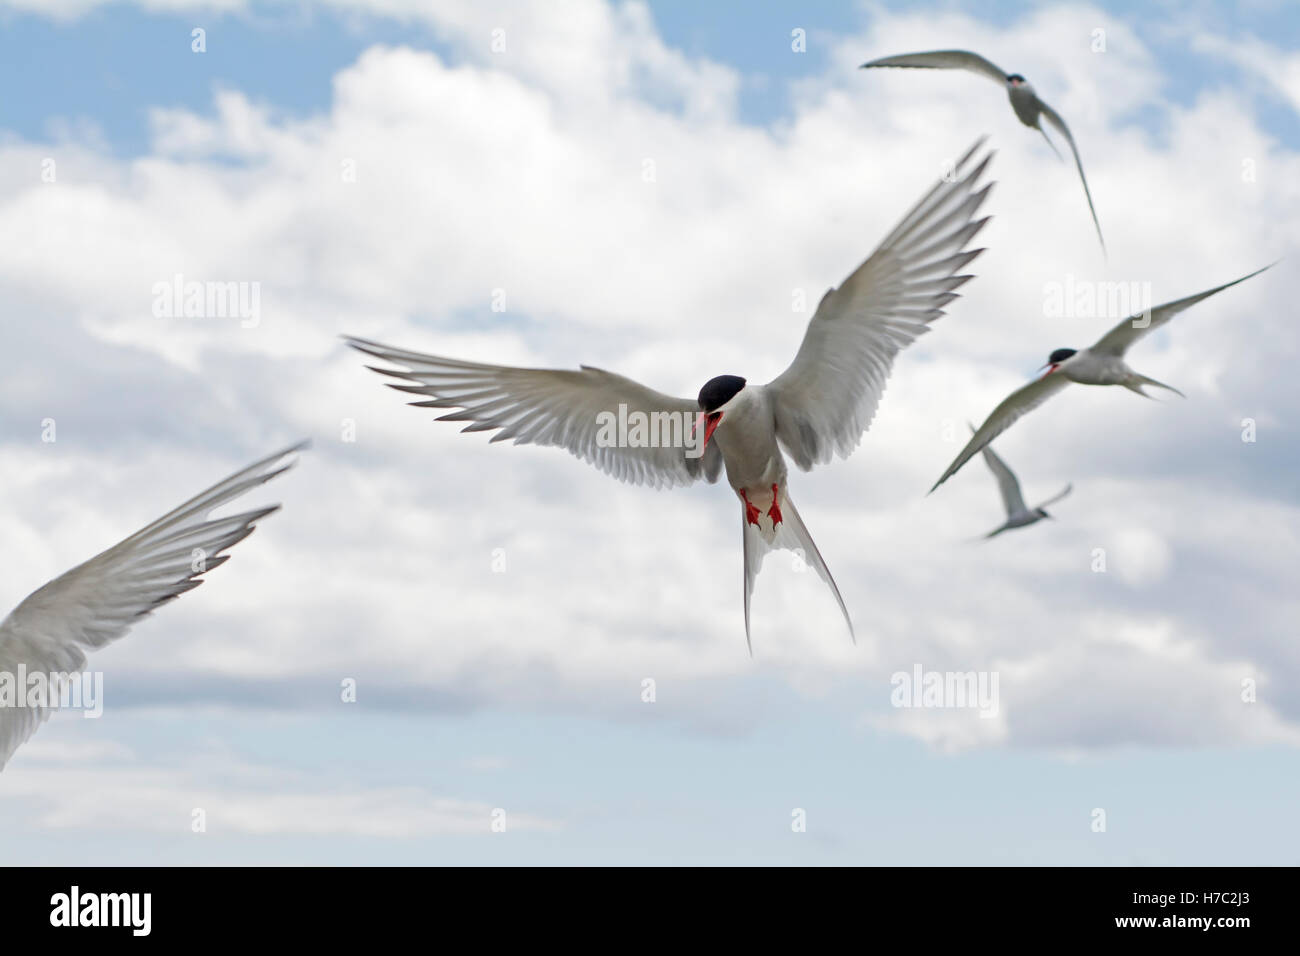 Arctic terns attacking while protecting their nests on the Isle of May, Scotland - Stock Image